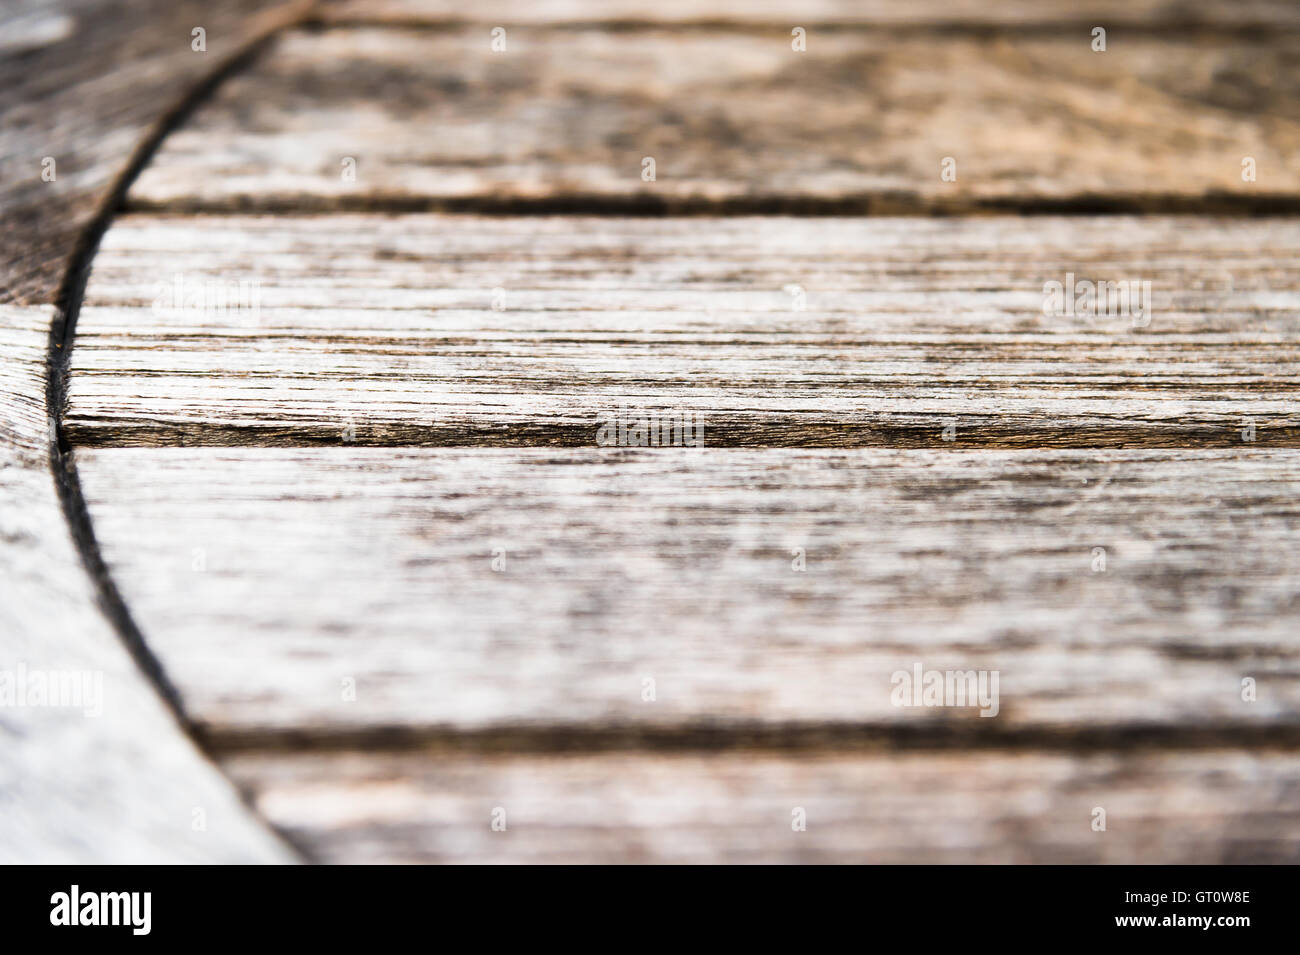 old wooden table background texture - Stock Image